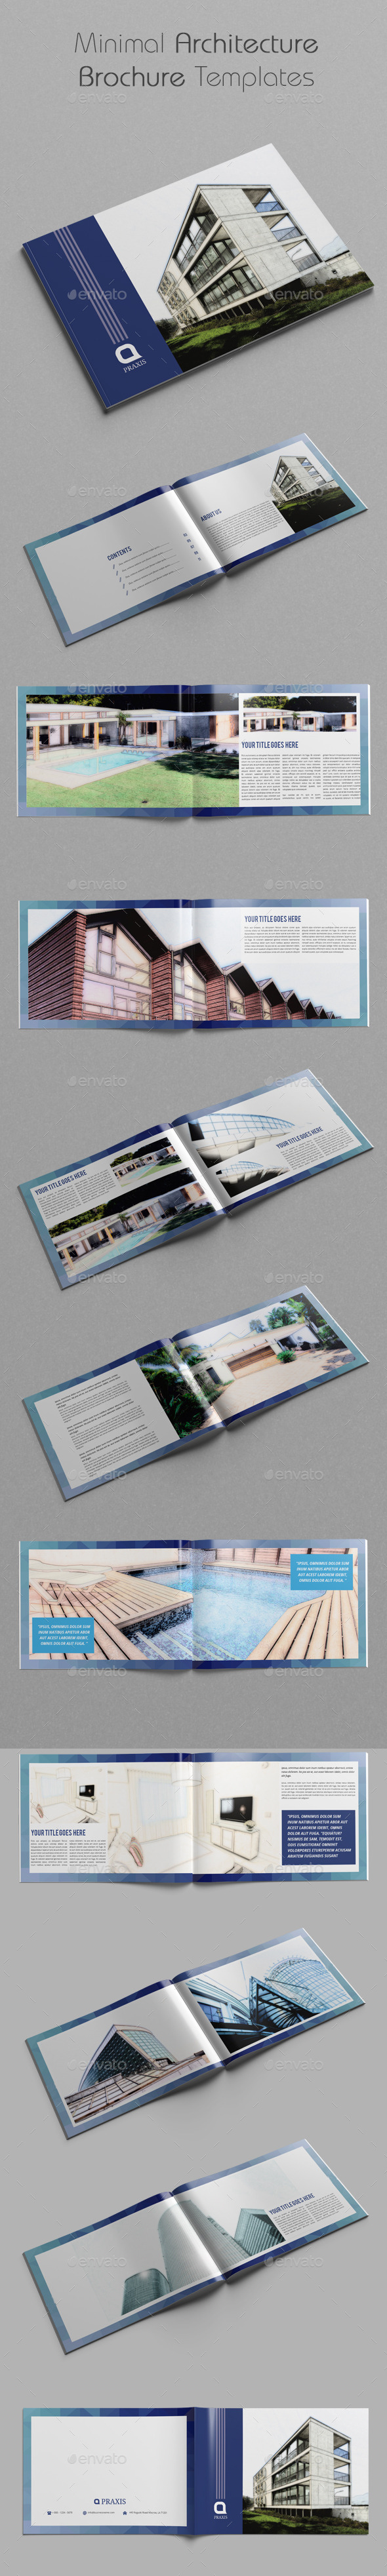 GraphicRiver Minimal Architecture Brochure Templates 11258221